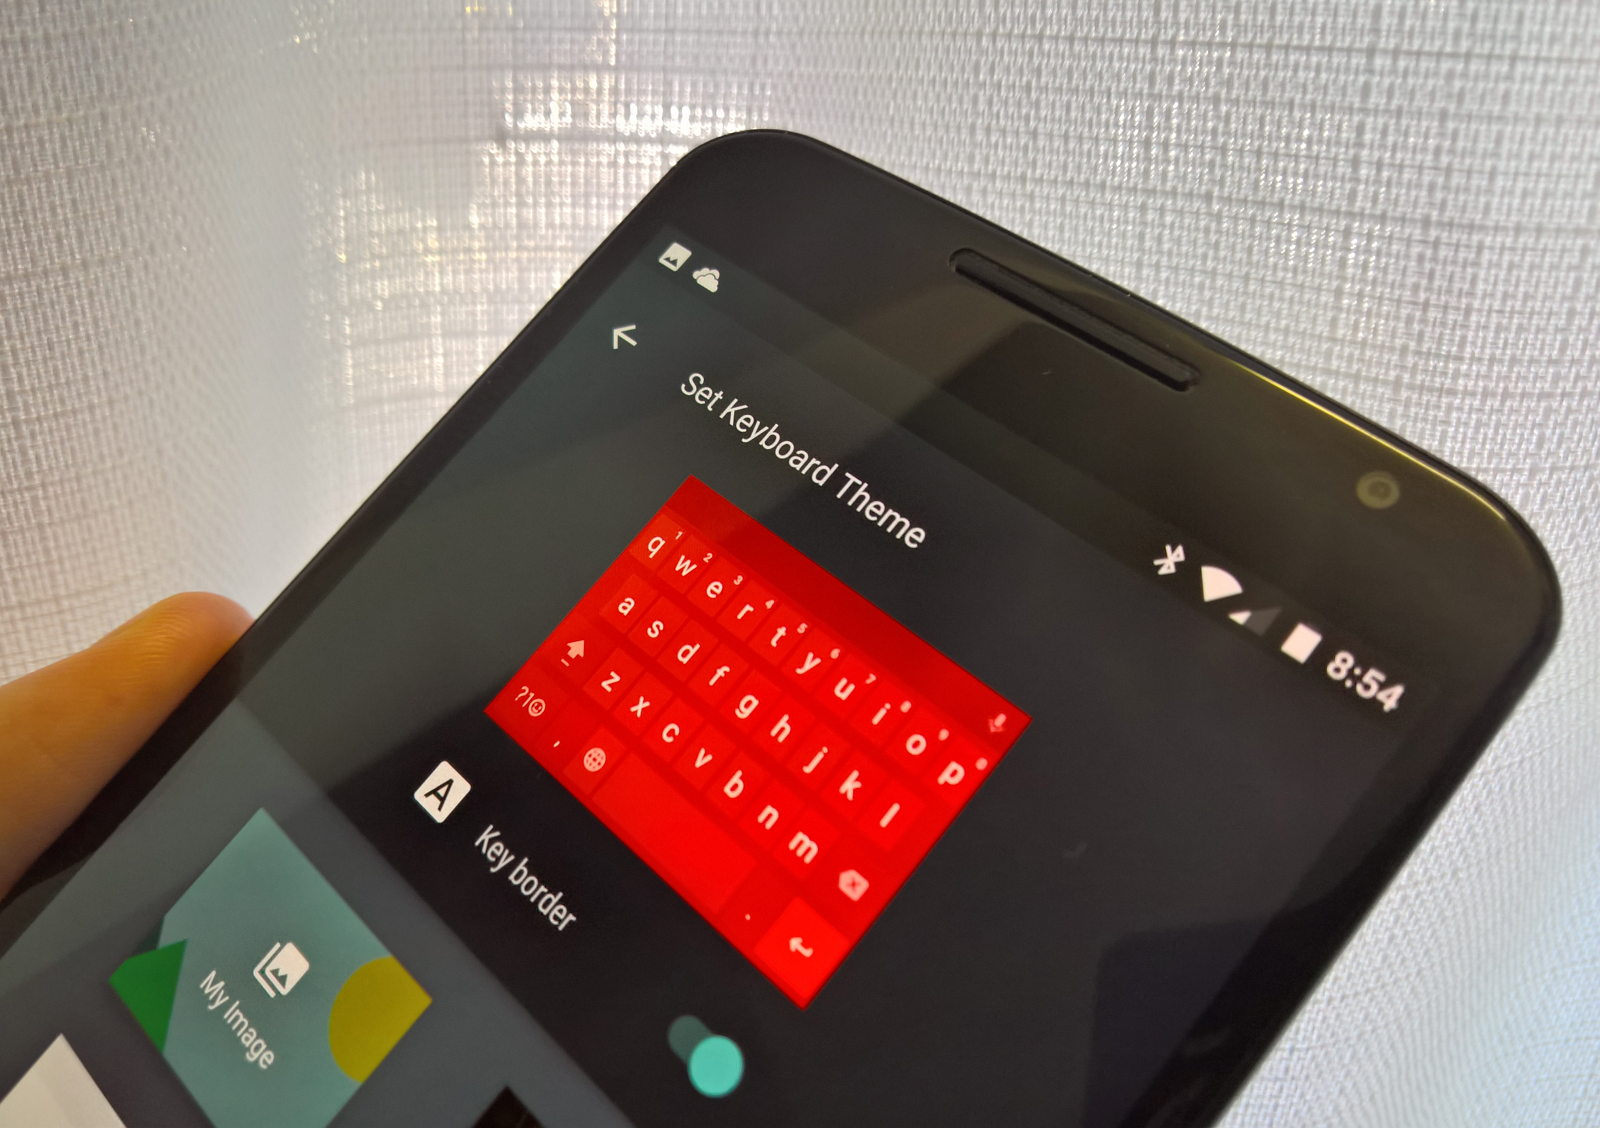 Set keyboard theme on Android